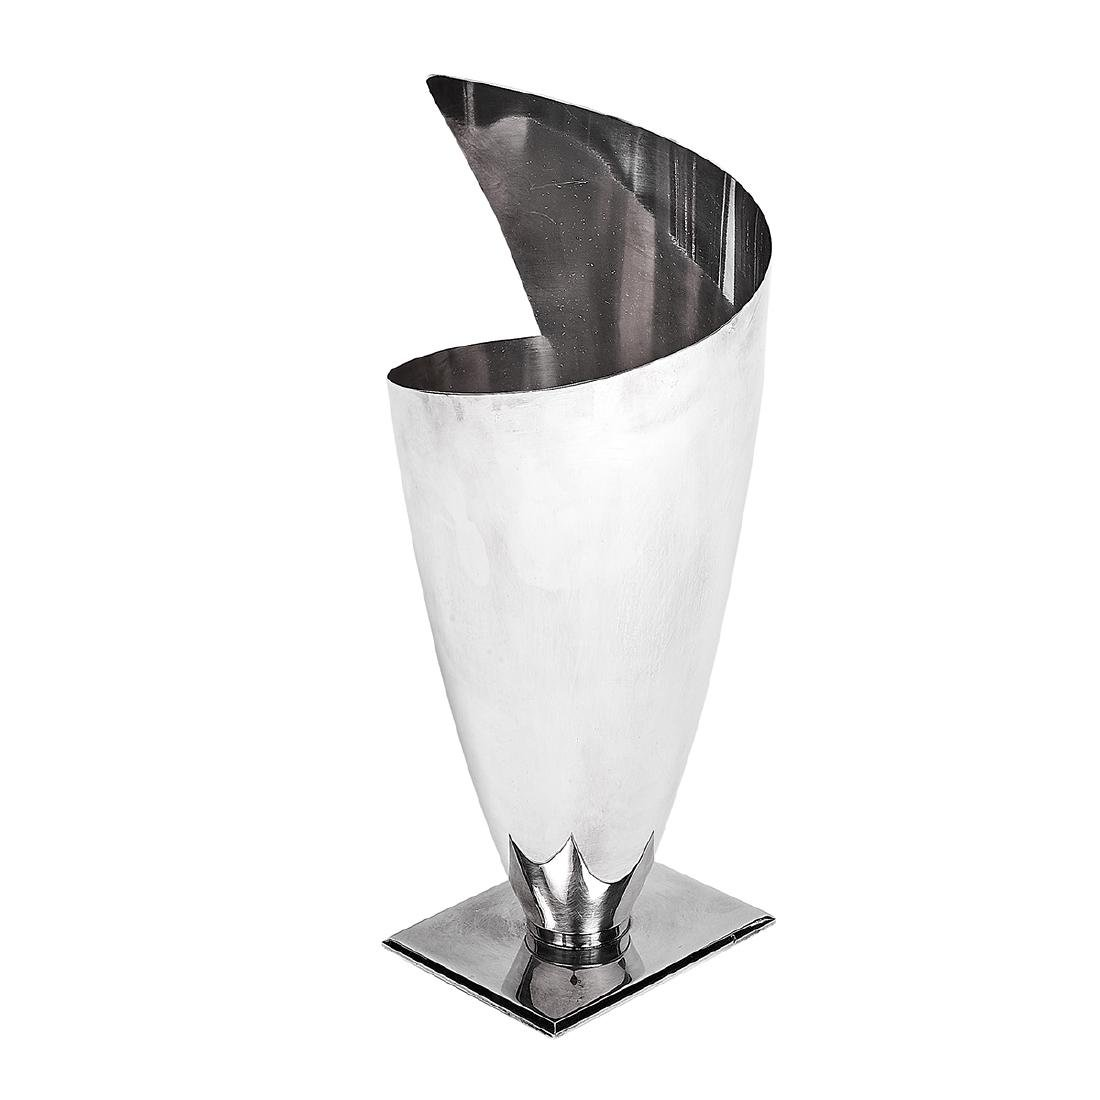 Elsa Rady for Swid Powell Wing Postmodern vase